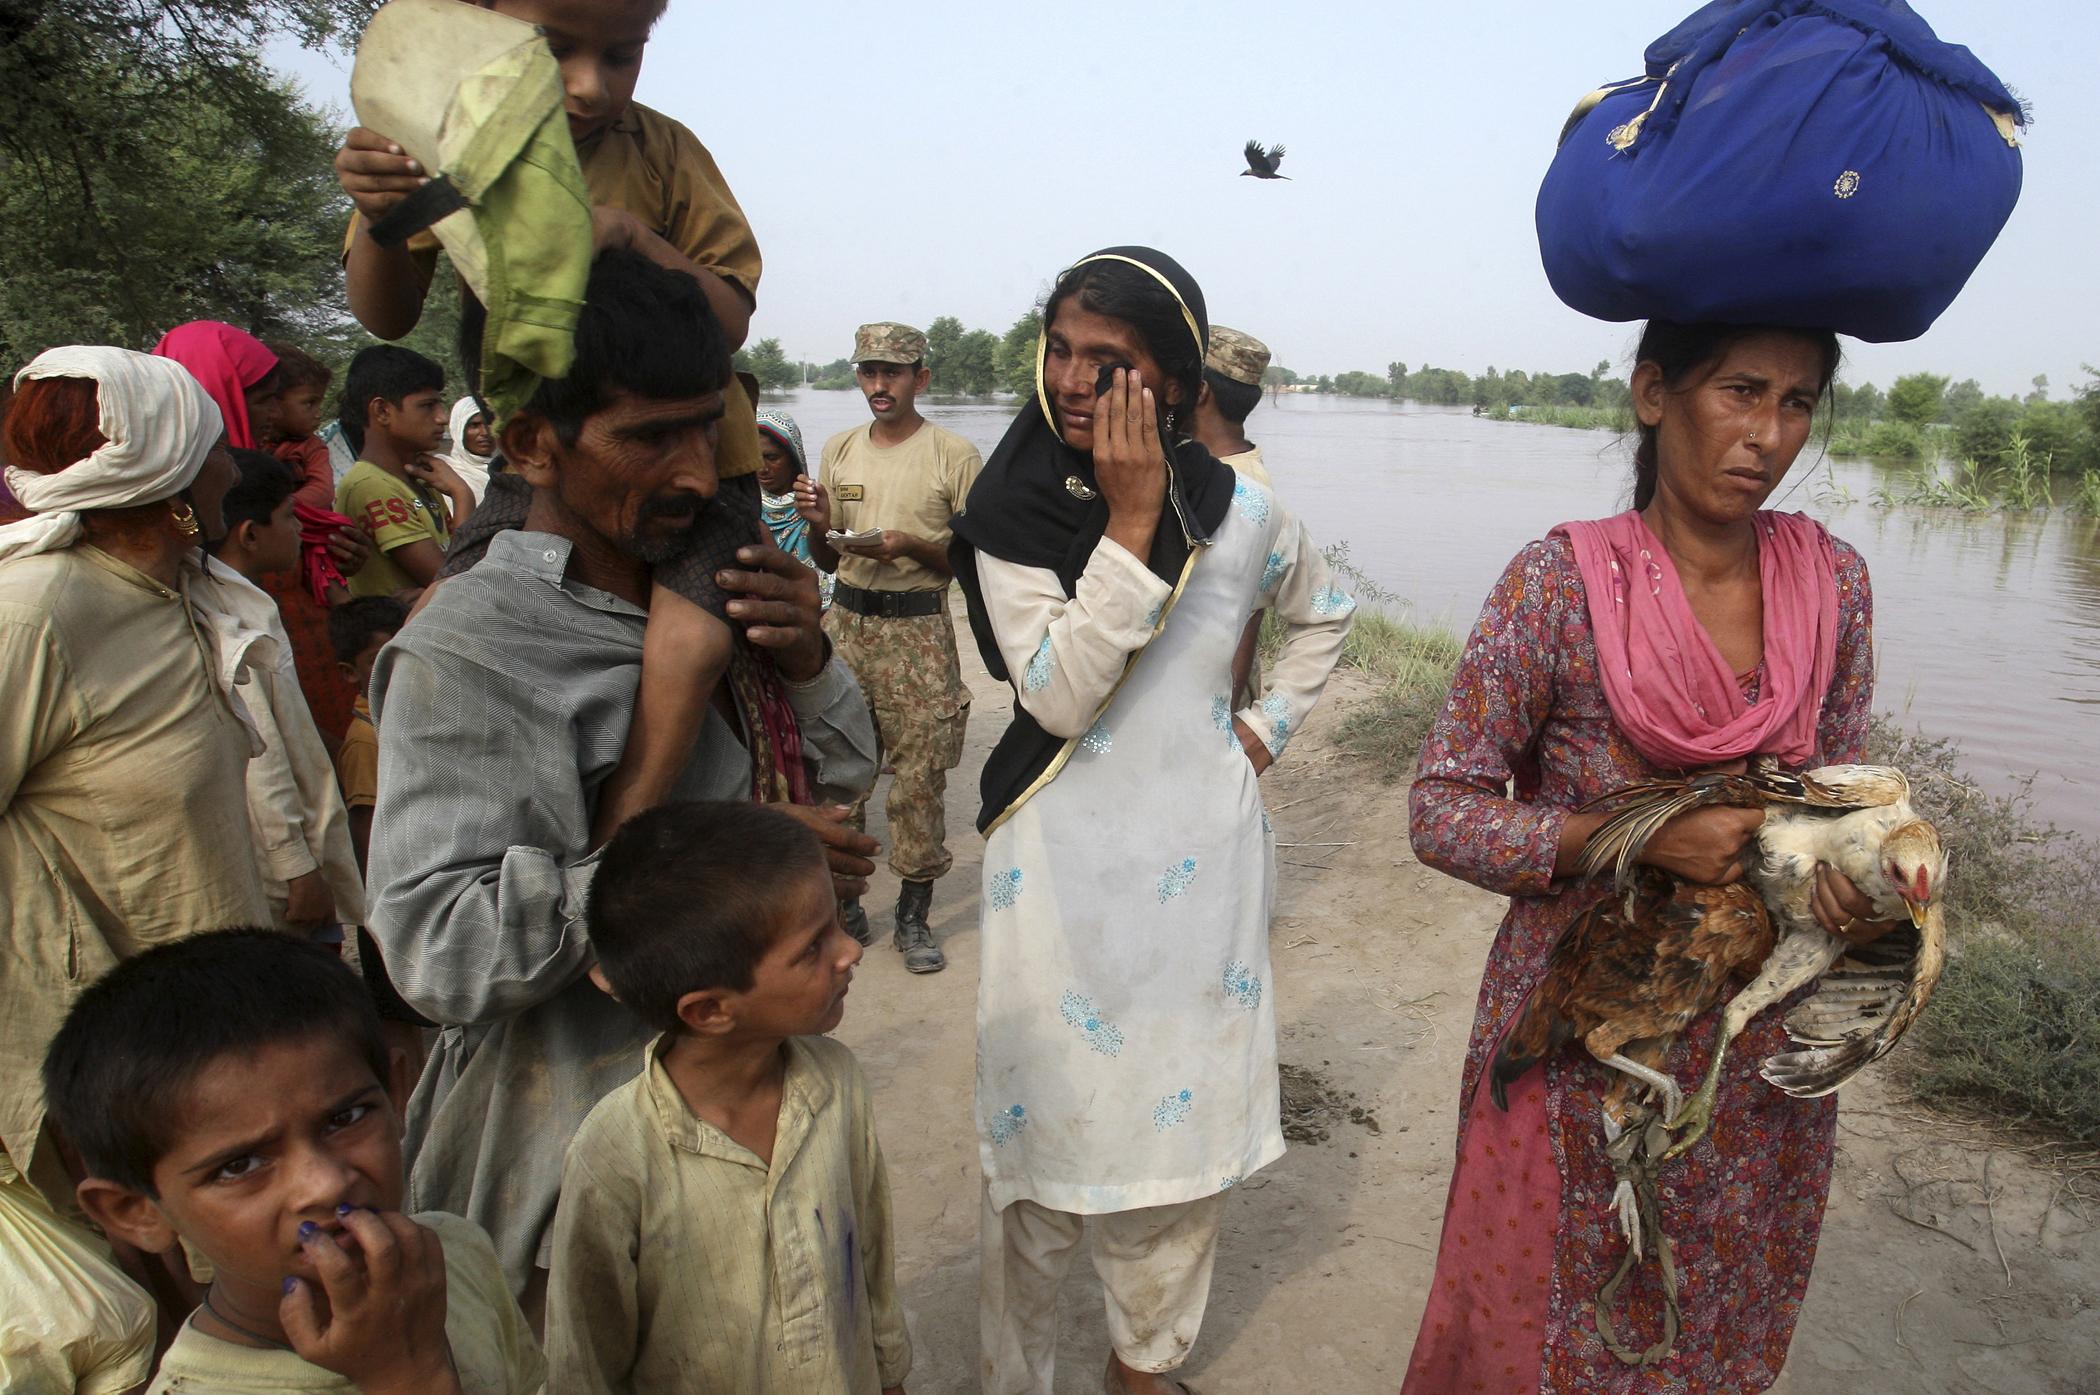 Pakistani villagers wait for boats to evacuate flooded areas along the Chenab River, in Jhang, Pakistan, Sept. 10, 2014.